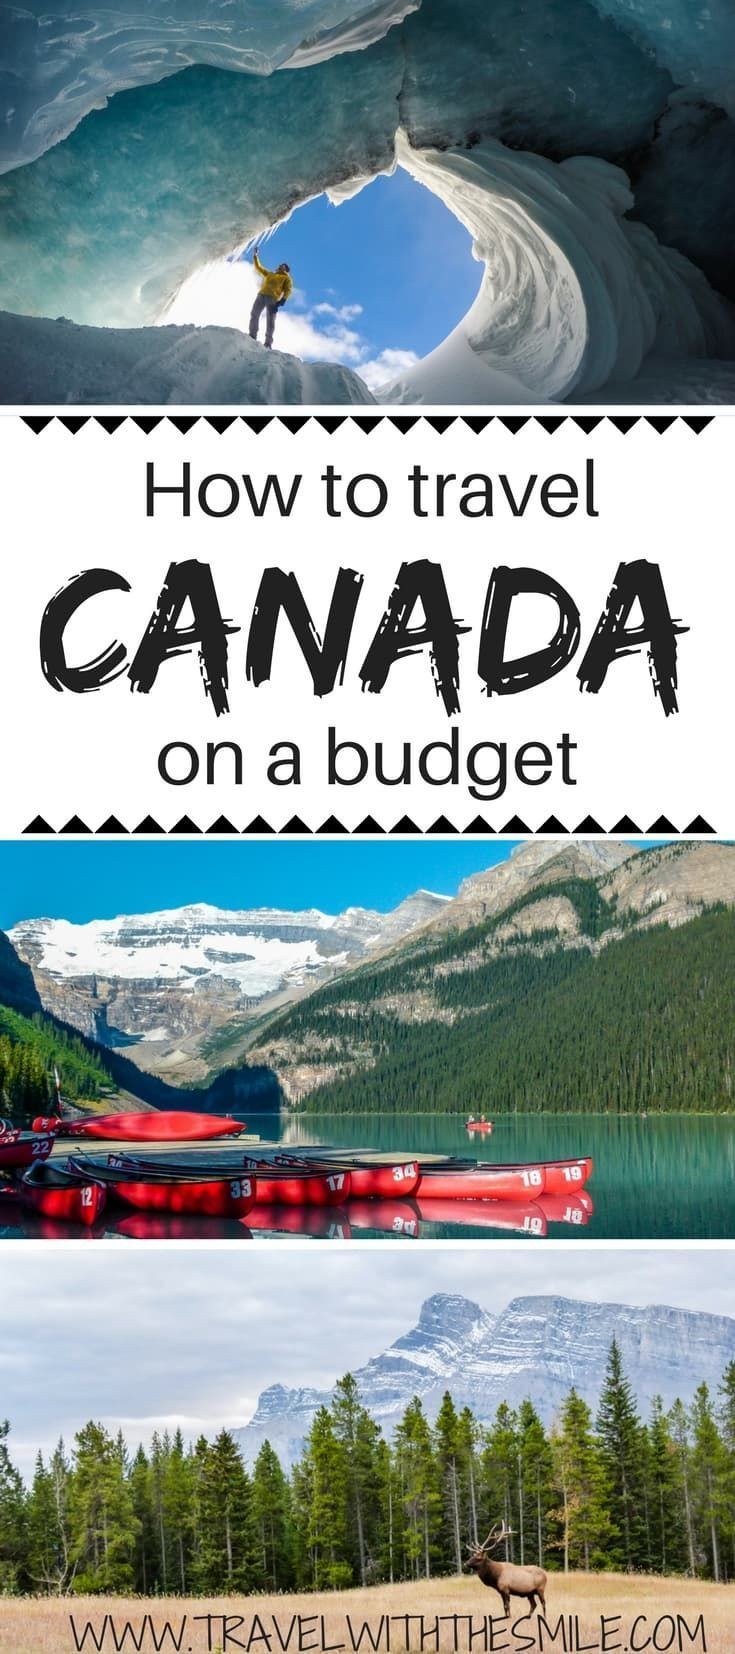 Cheapest Way To Travel Across Canada Canada Travel Canadian